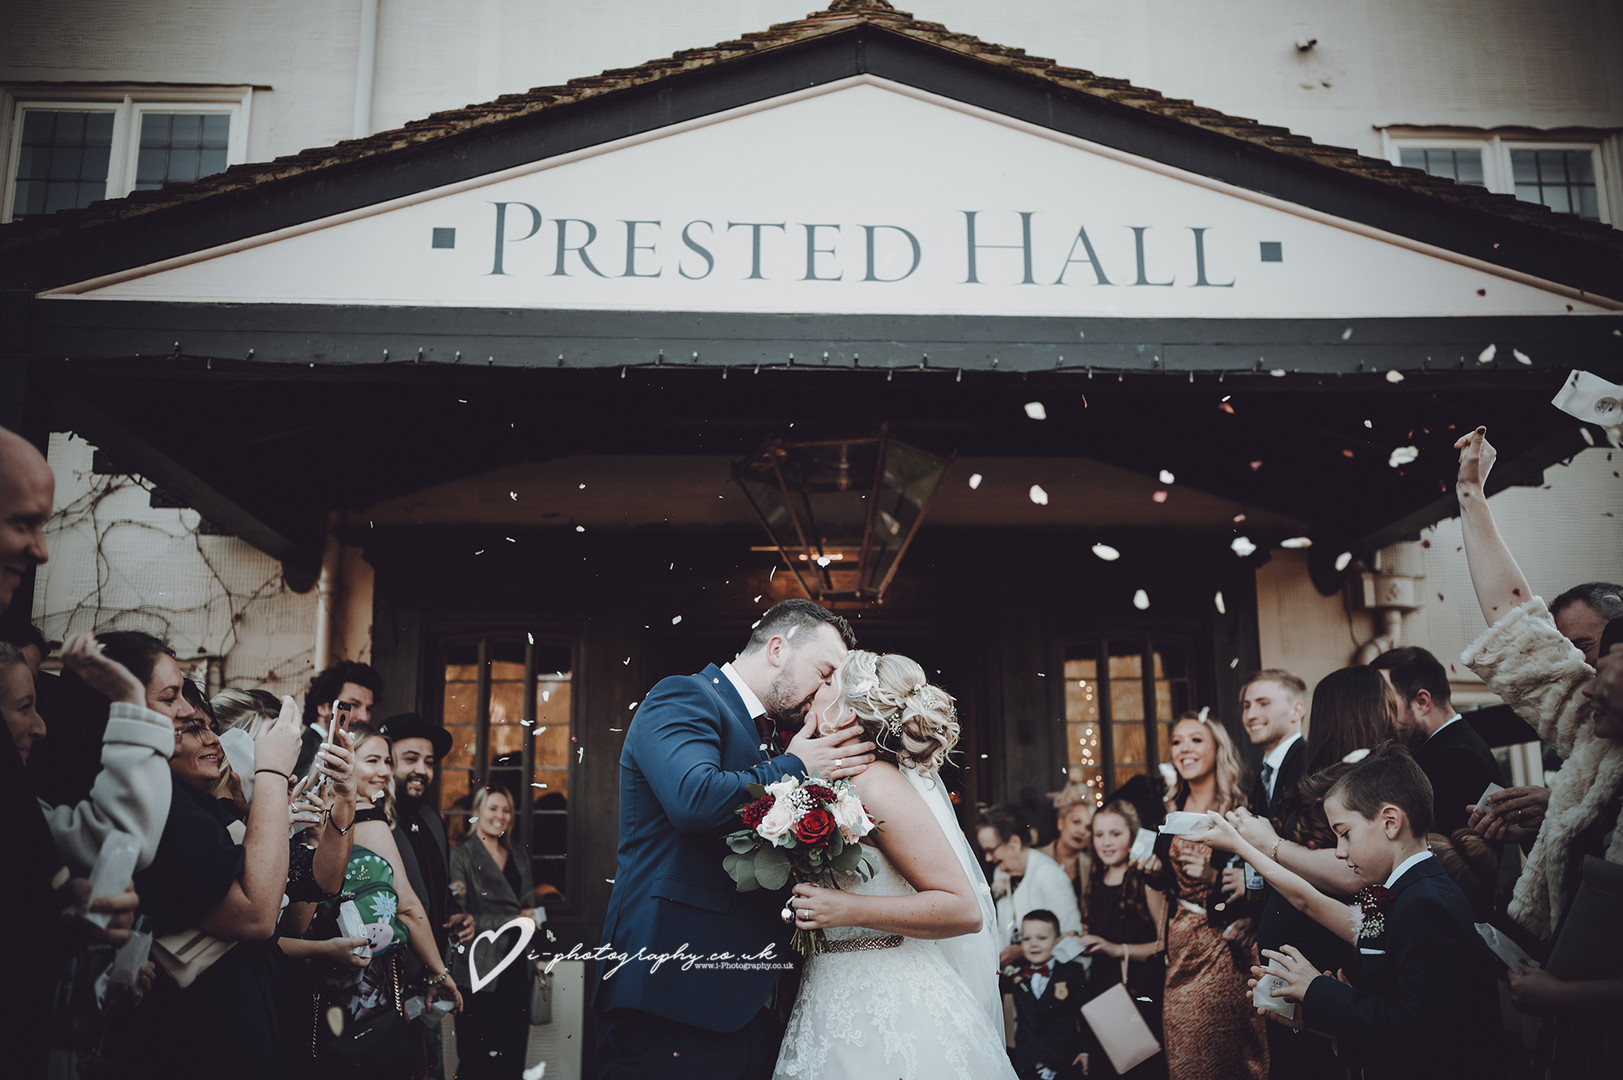 Prested Hall,